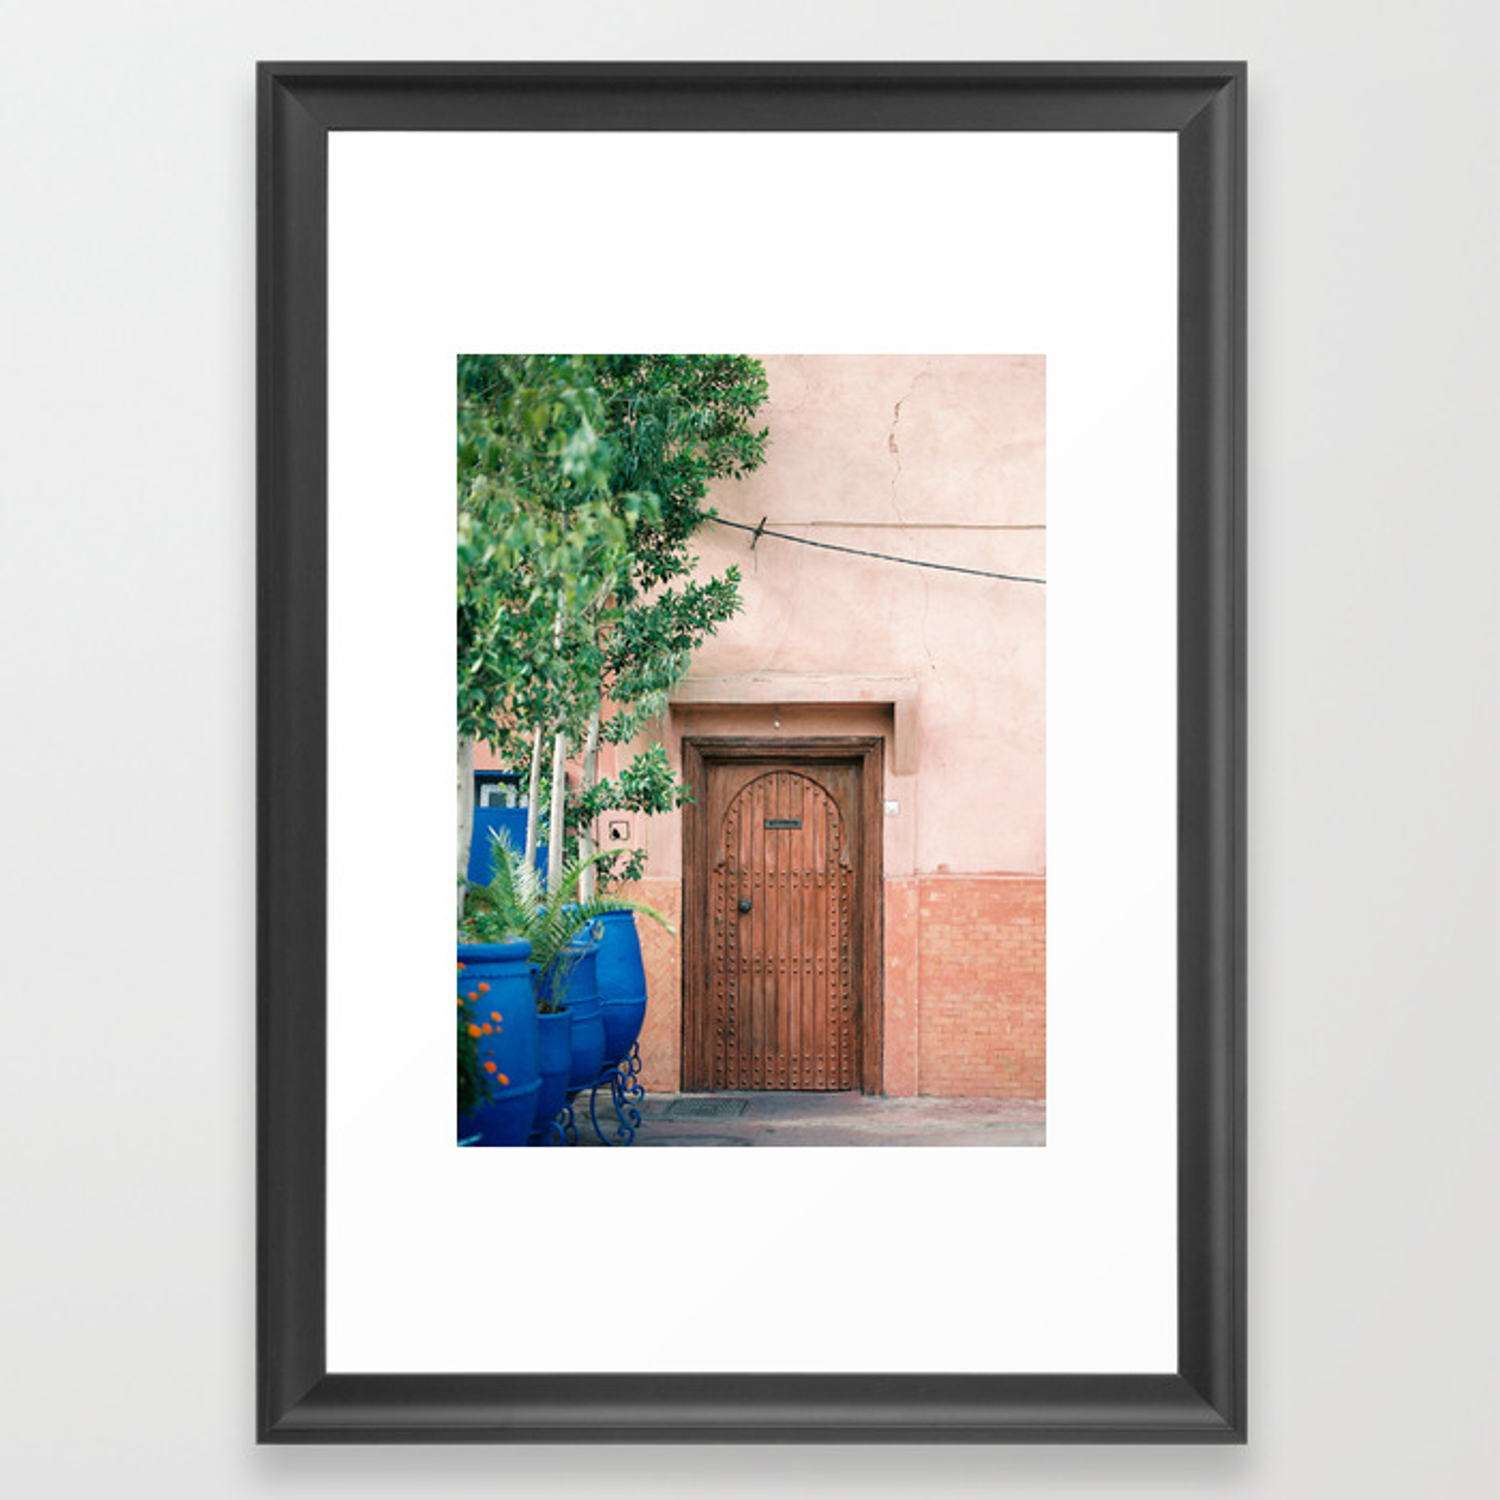 Marrakech travel photography wooden door on coral wall colorful wanderlust photo print framed art print